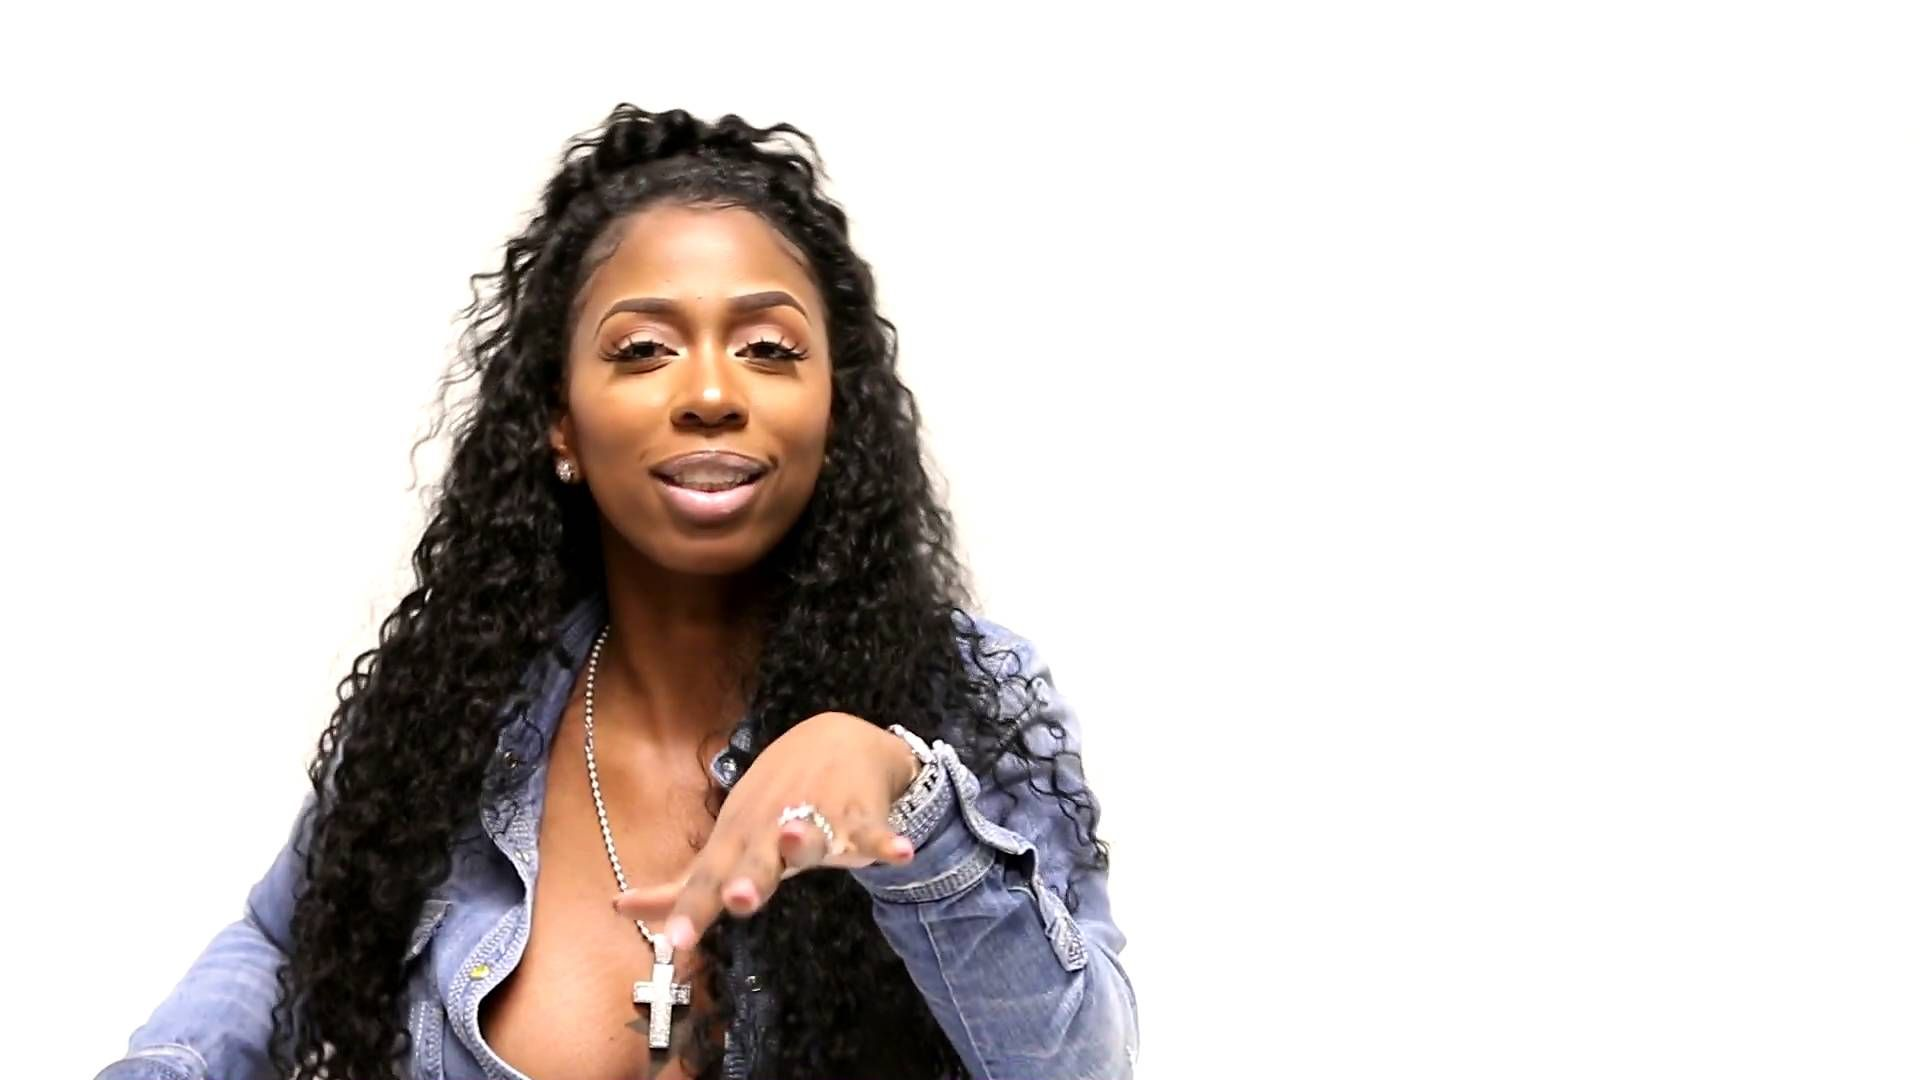 Kash Doll aka Arkeisha Knight is a rapper originally from